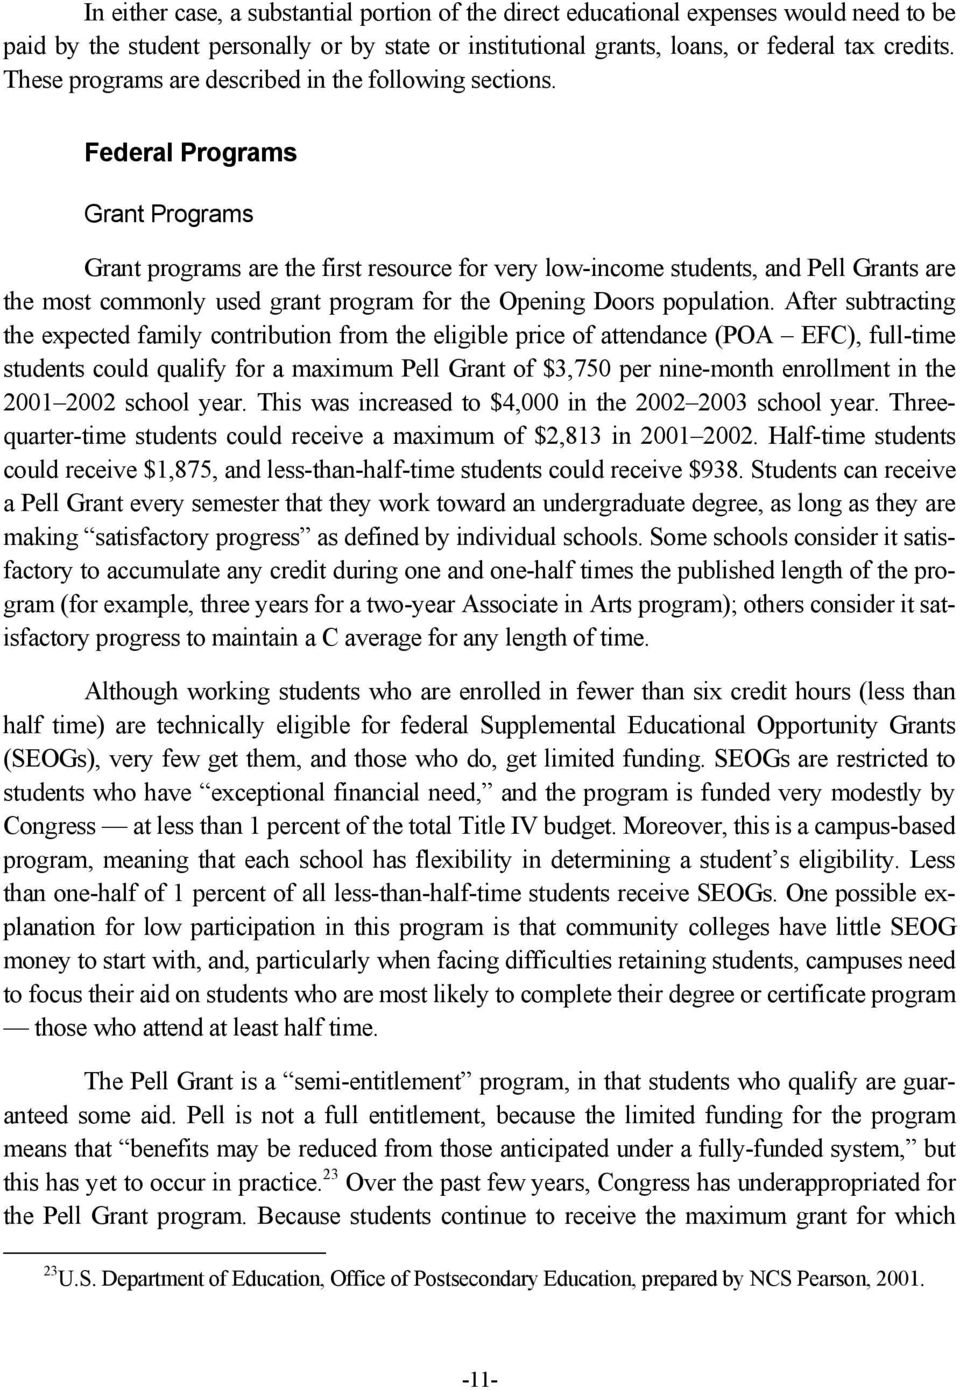 Federal Programs Grant Programs Grant programs are the first resource for very low-income students, and Pell Grants are the most commonly used grant program for the Opening Doors population.